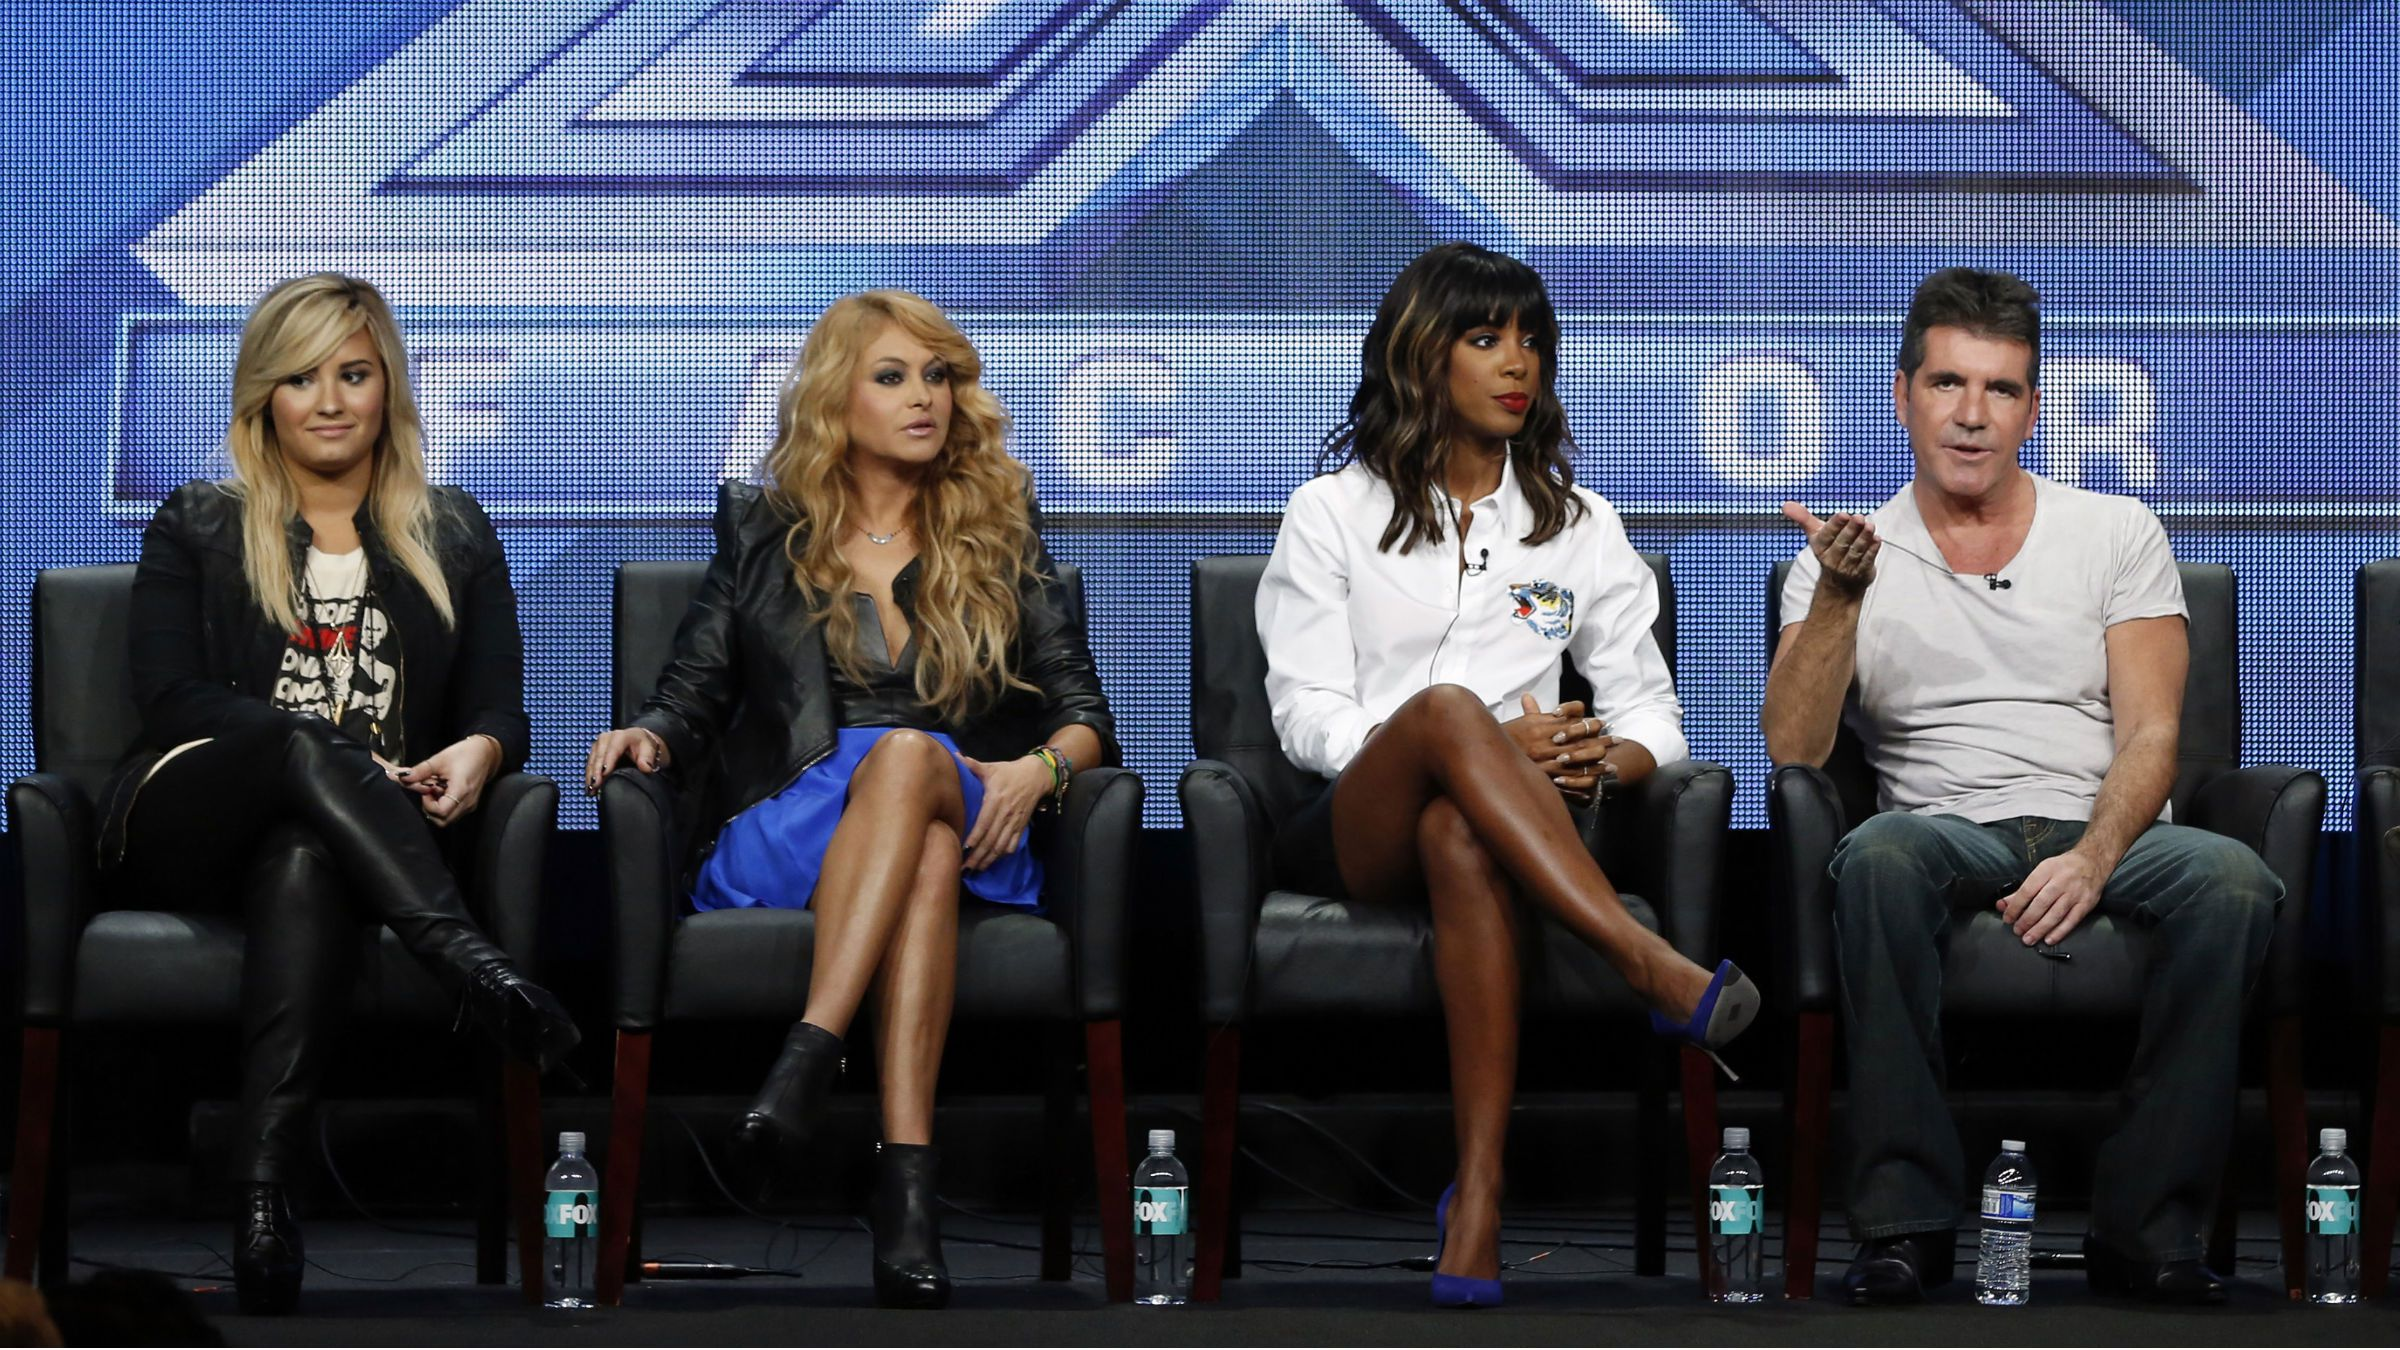 """Judge Simon Cowell speaks next to fellow judges (from L-R) Demi Lovato, Paulina Rubio and Kelly Rowland at a panel for the television series """"The X Factor"""" during the Fox portion of the Television Critics Association Summer press tour in Beverly Hills, California August 1, 2013."""